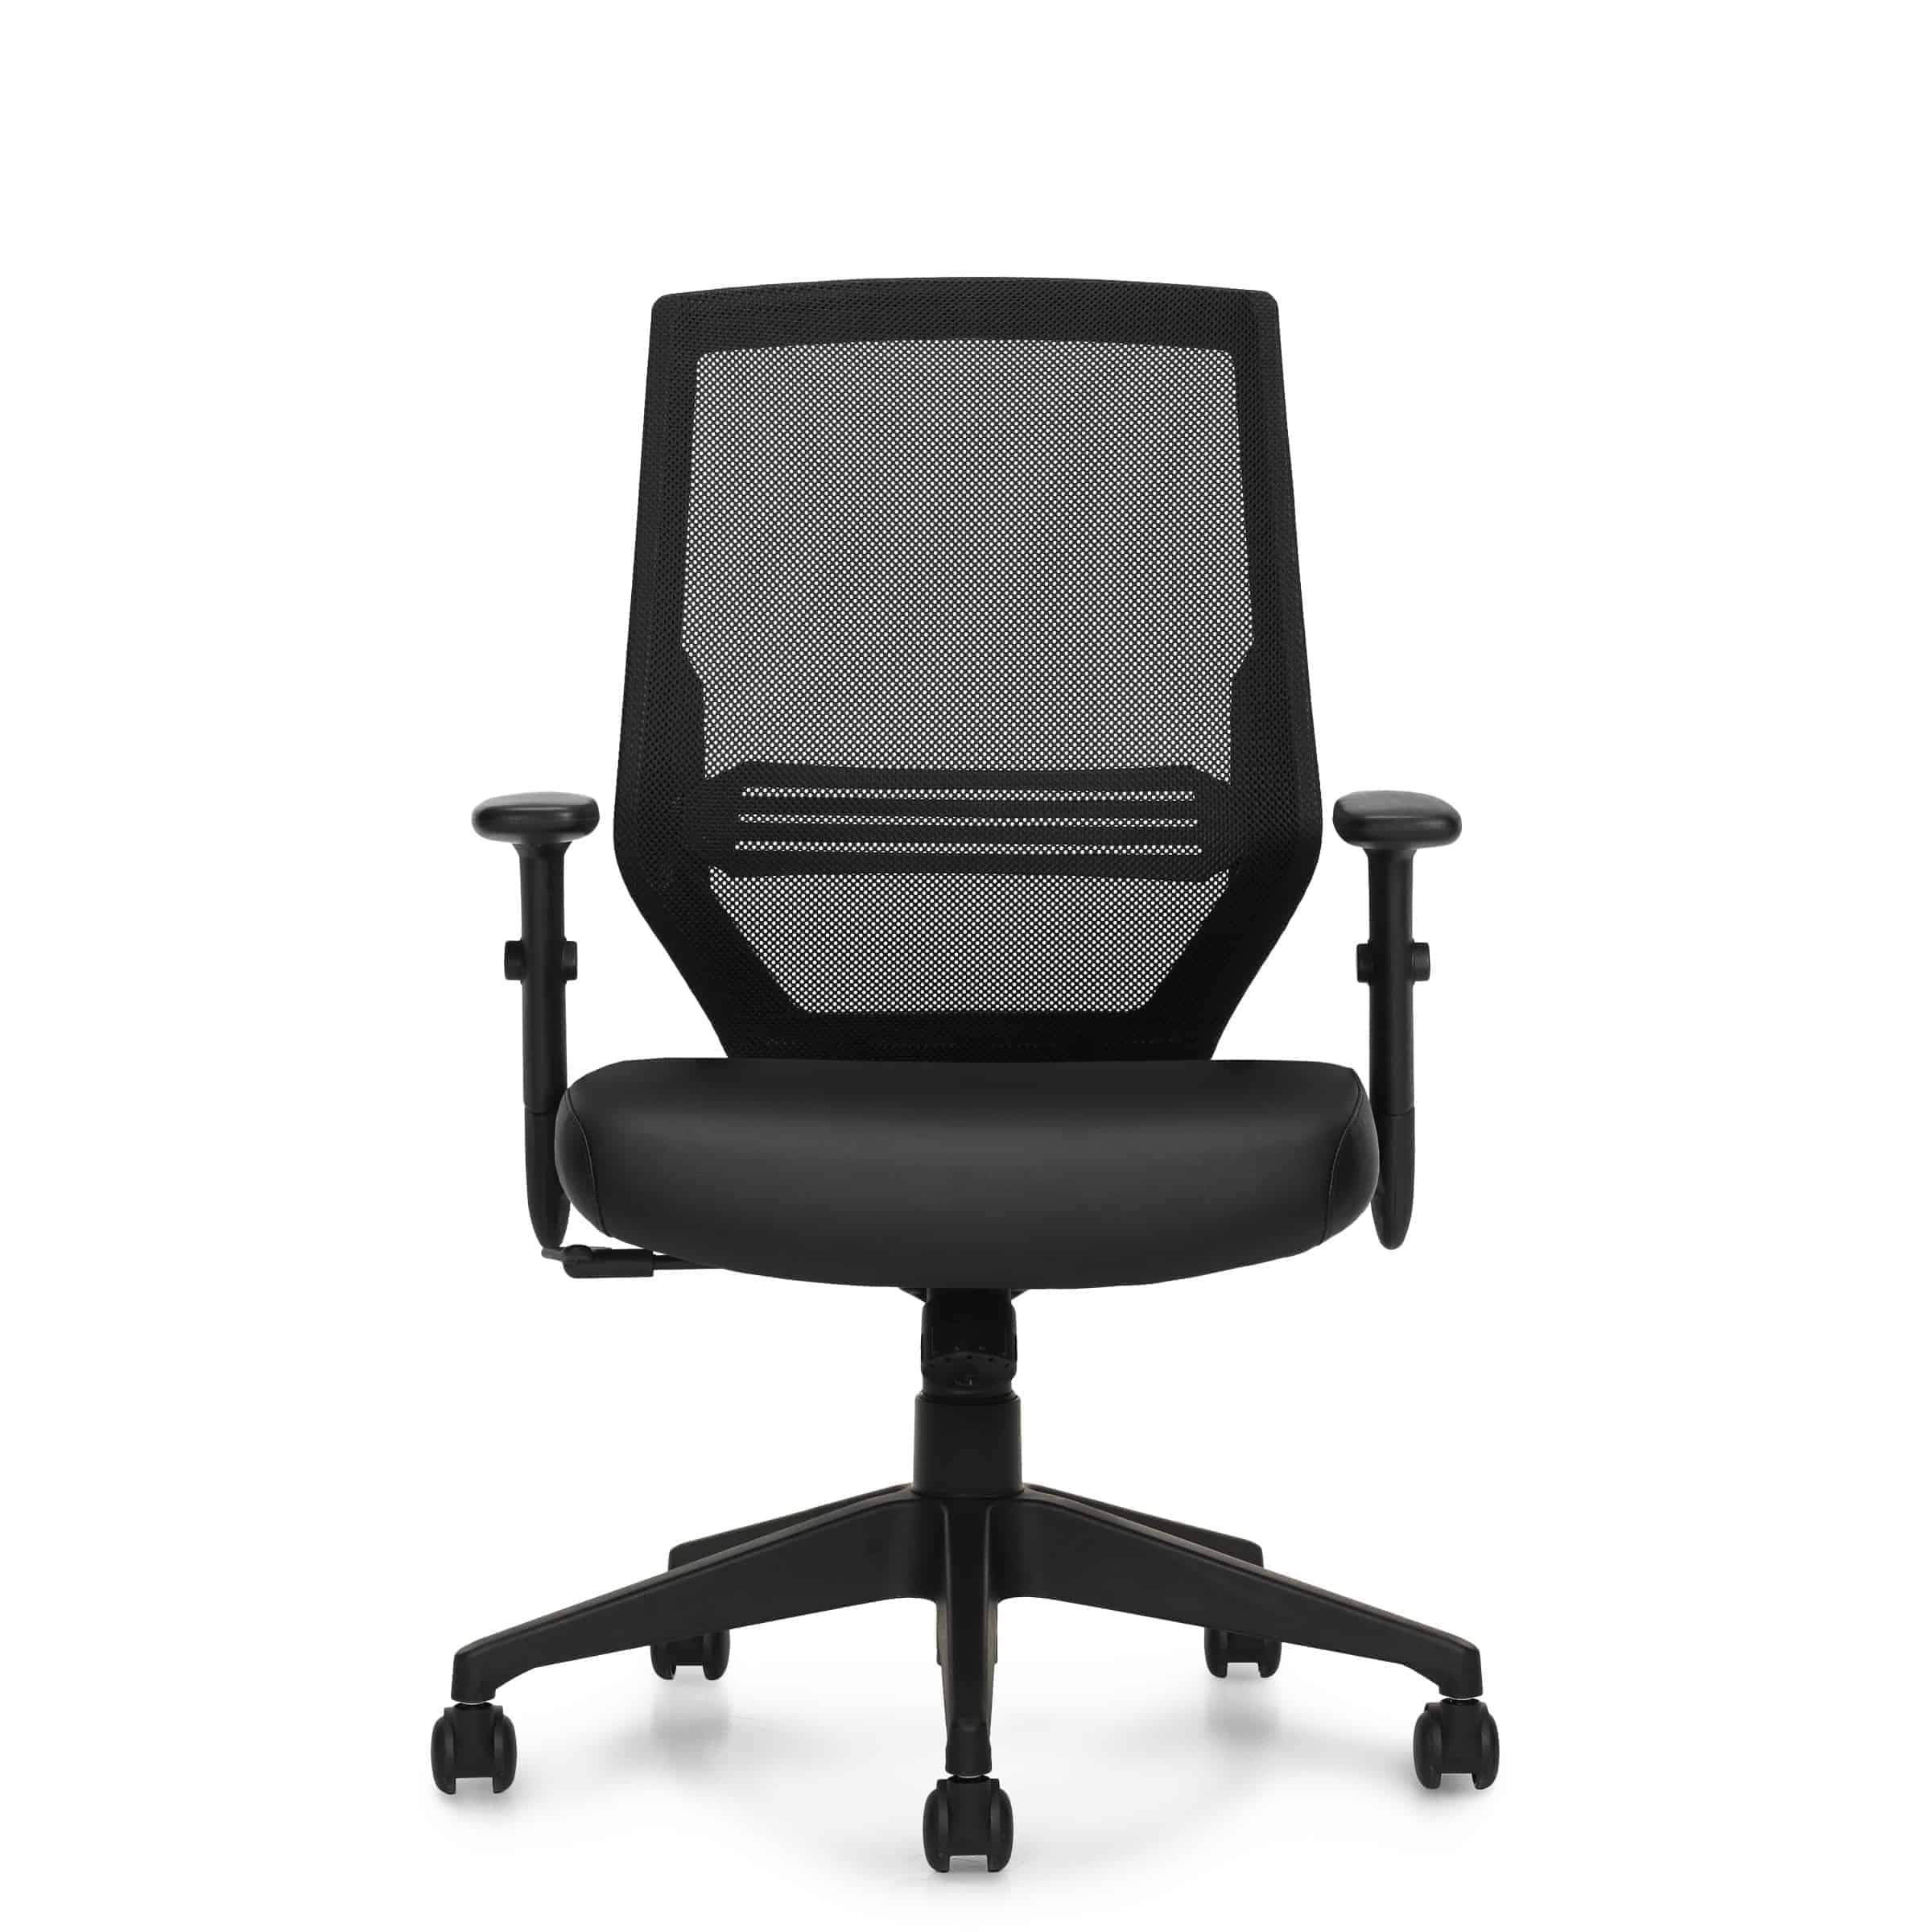 Ergonomic chair- Joyce Contract Interiors